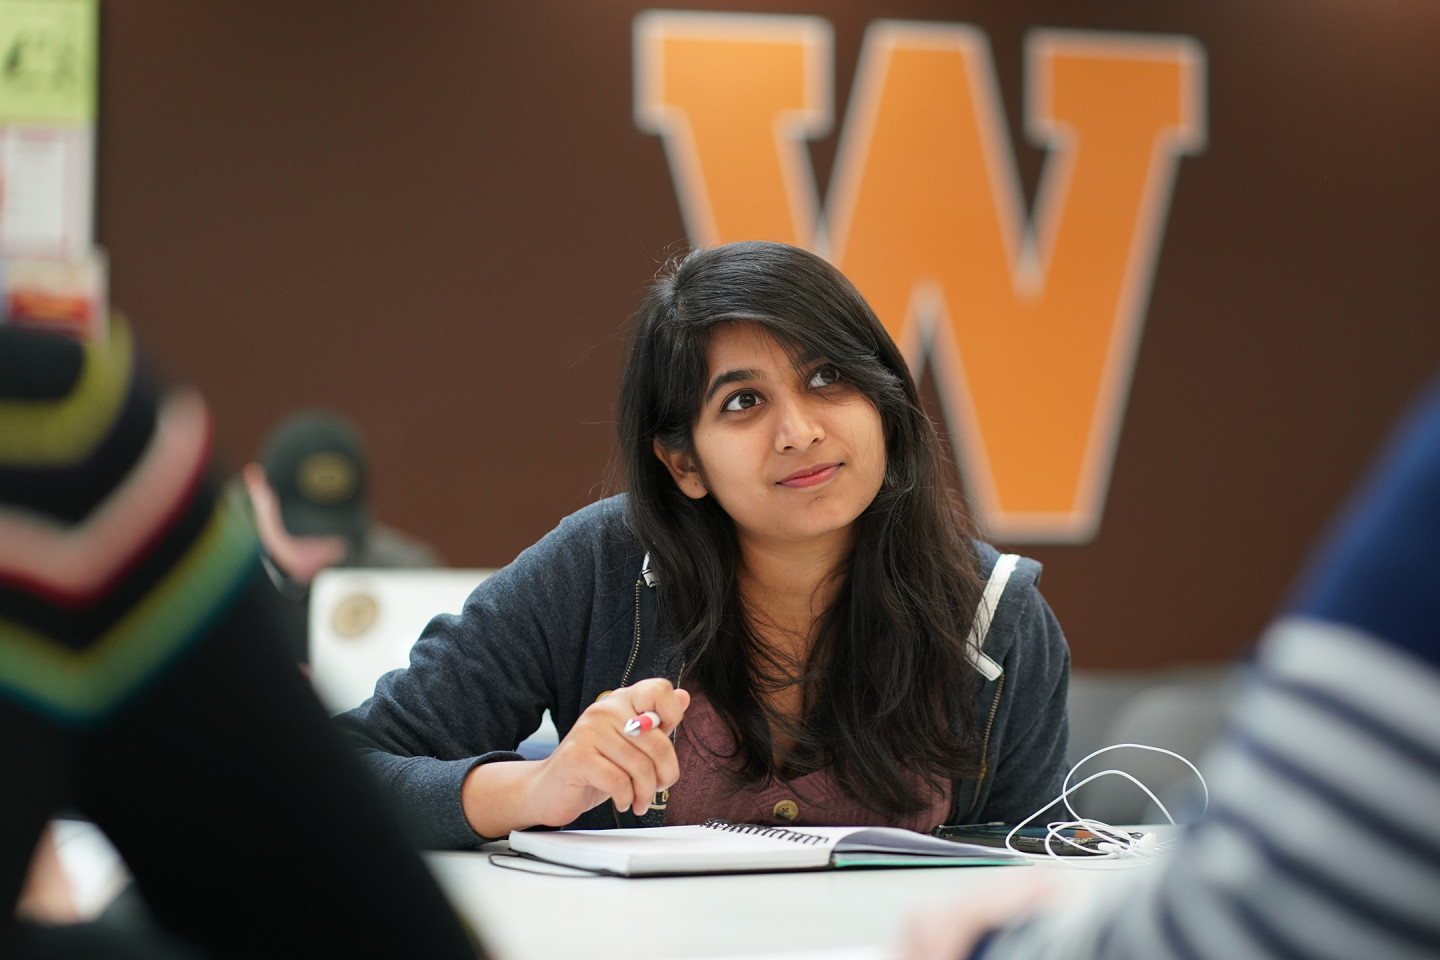 A student sits at a desk with a pen and notebook.